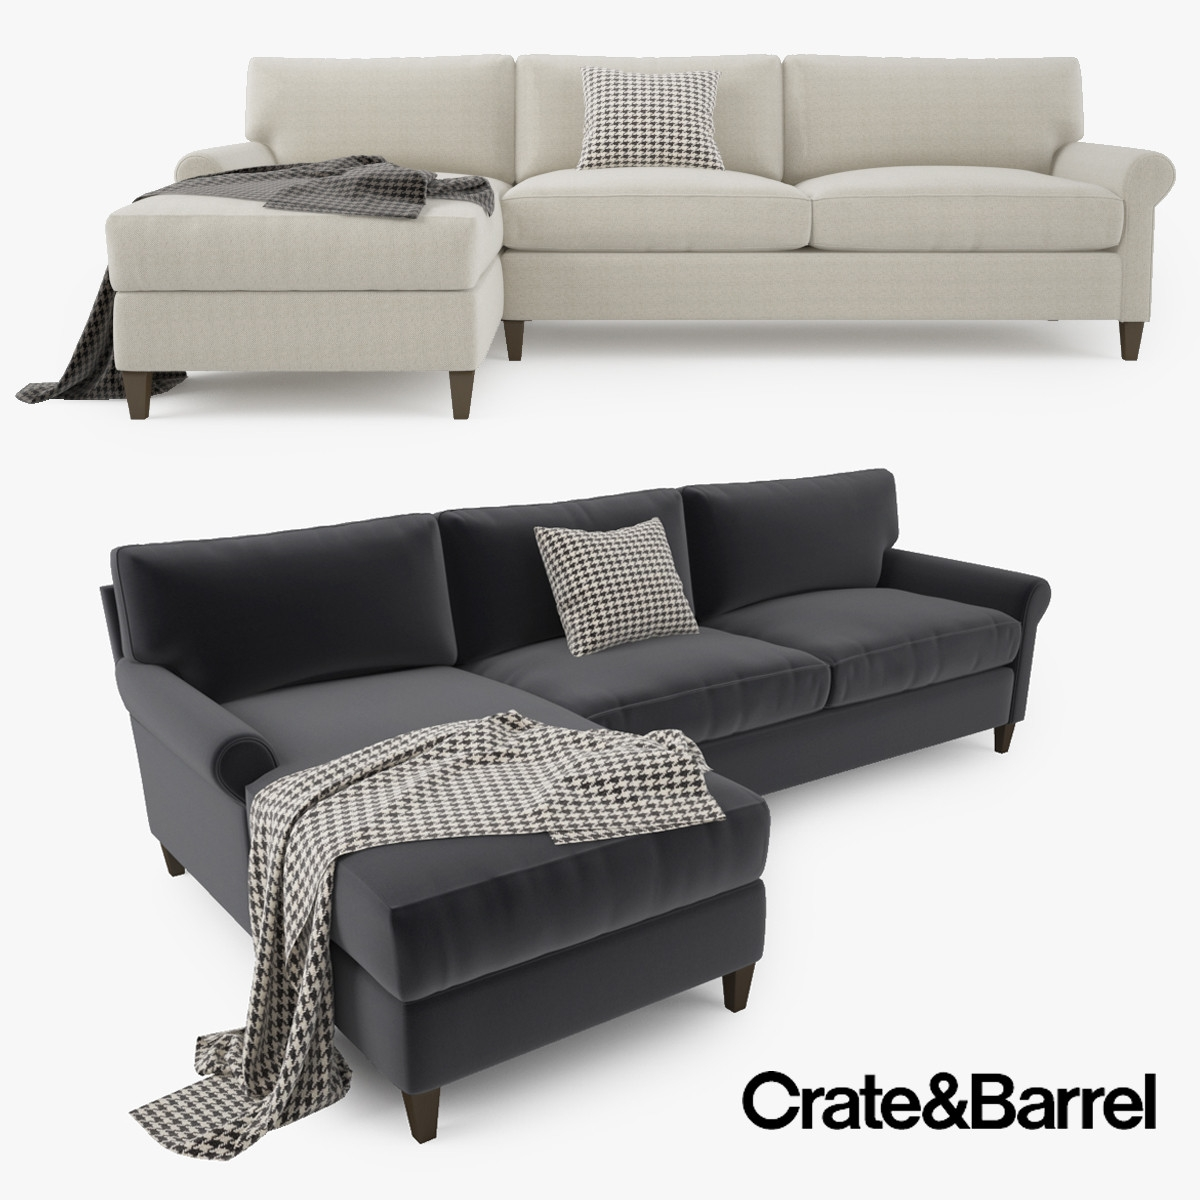 15 Collection Of Crate And Barrel Sectional Sofas